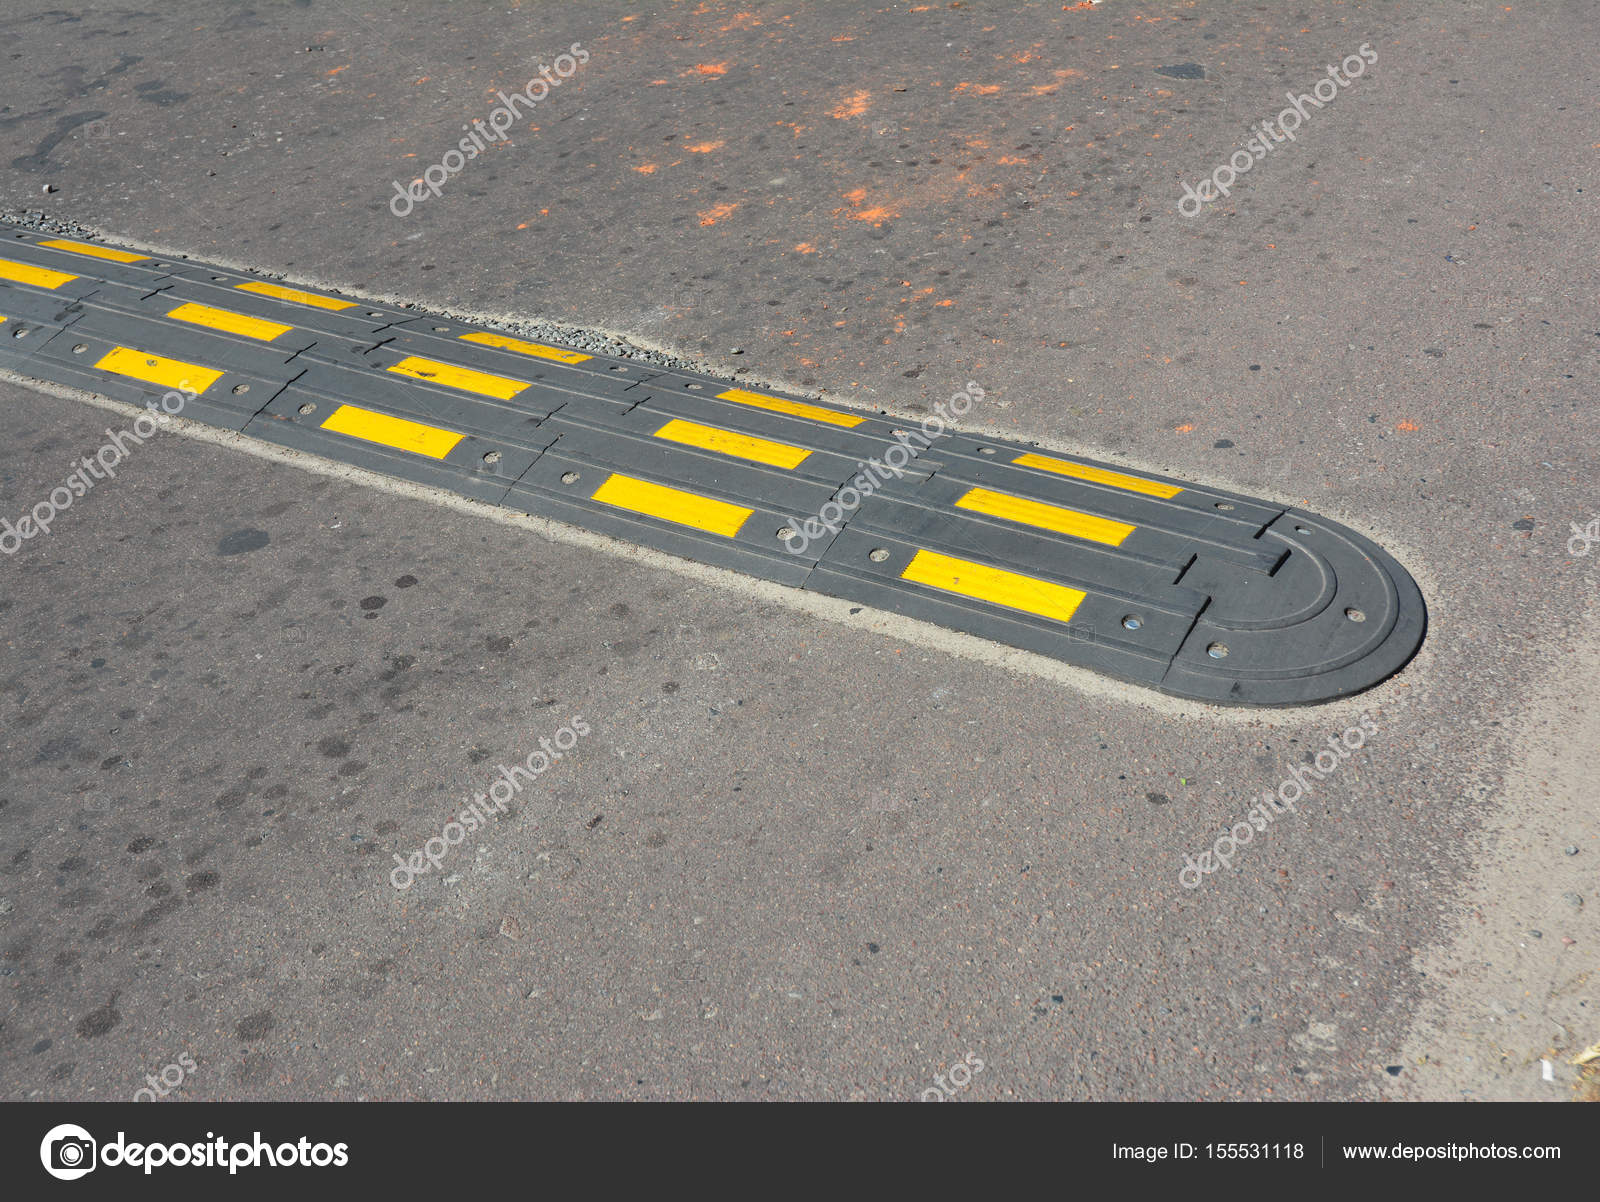 traffic safety speed bump on an asphalt road speed bumps or speed